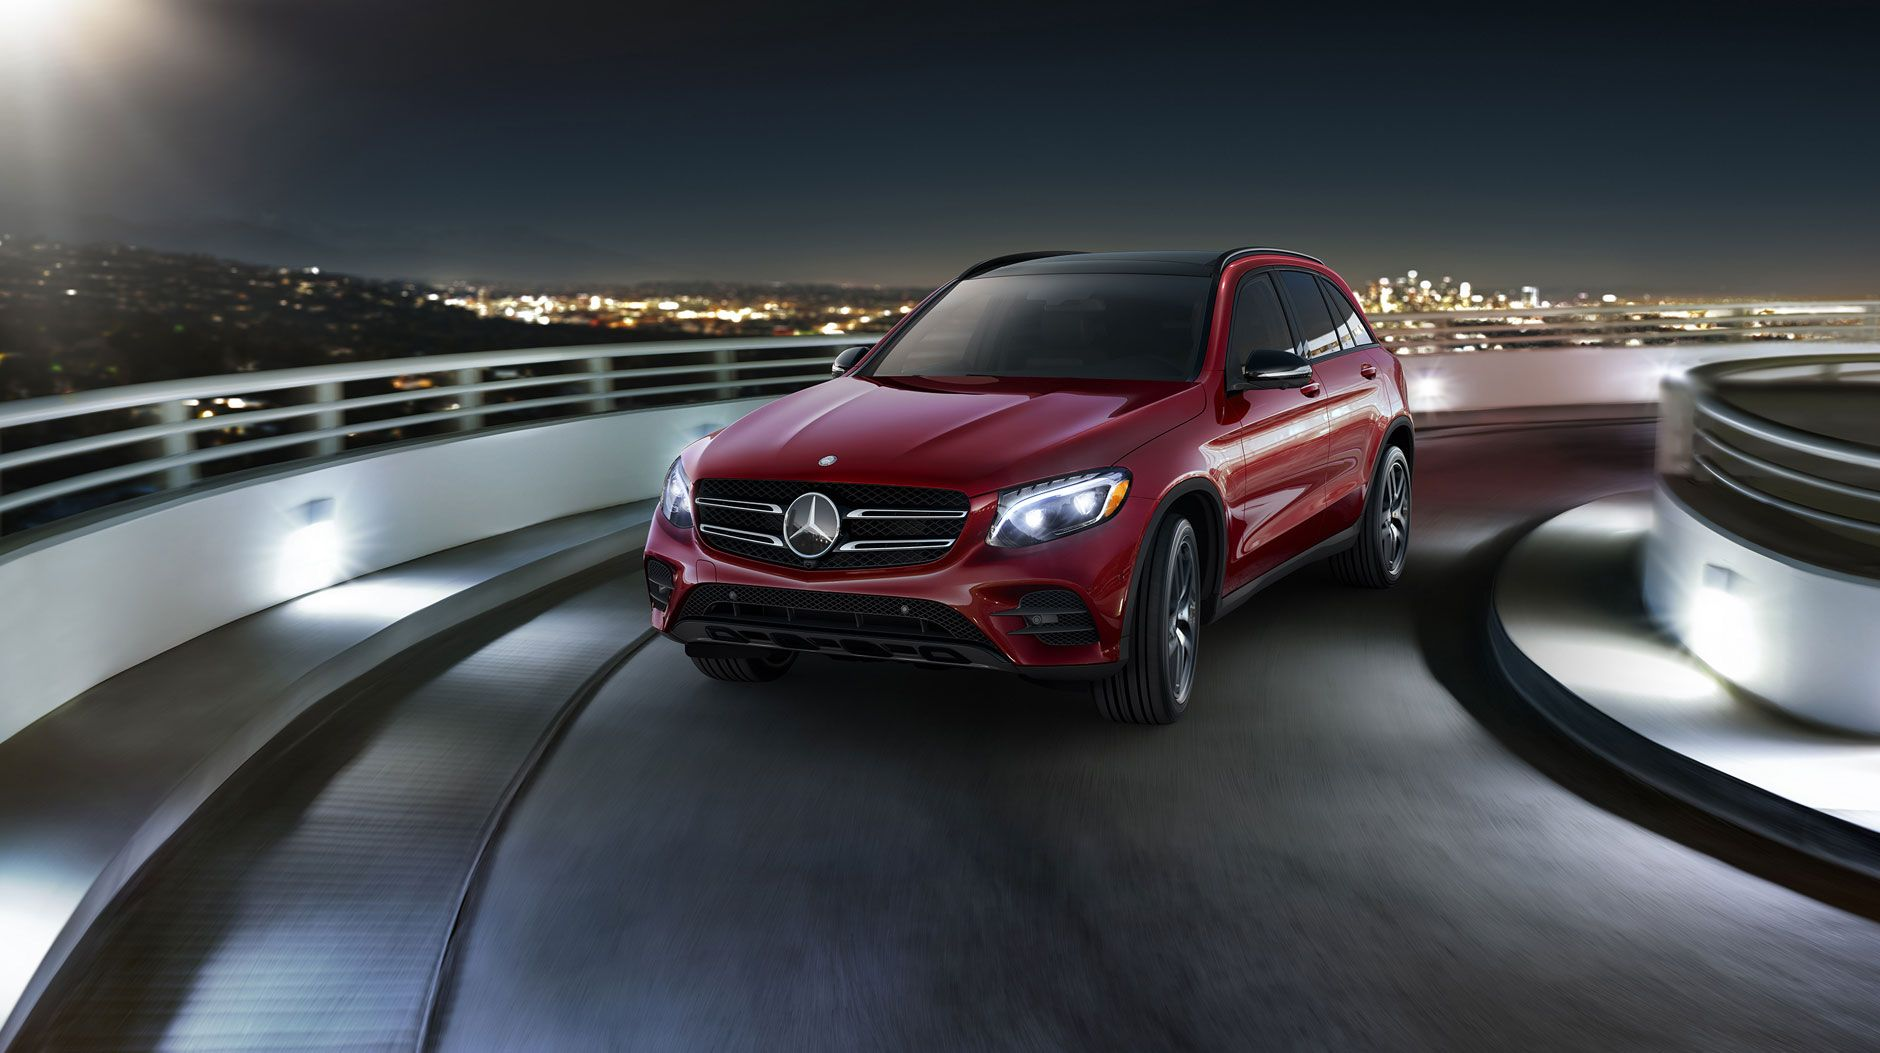 Glc300 In Cardinal Red With Night And Premium 3 Packages